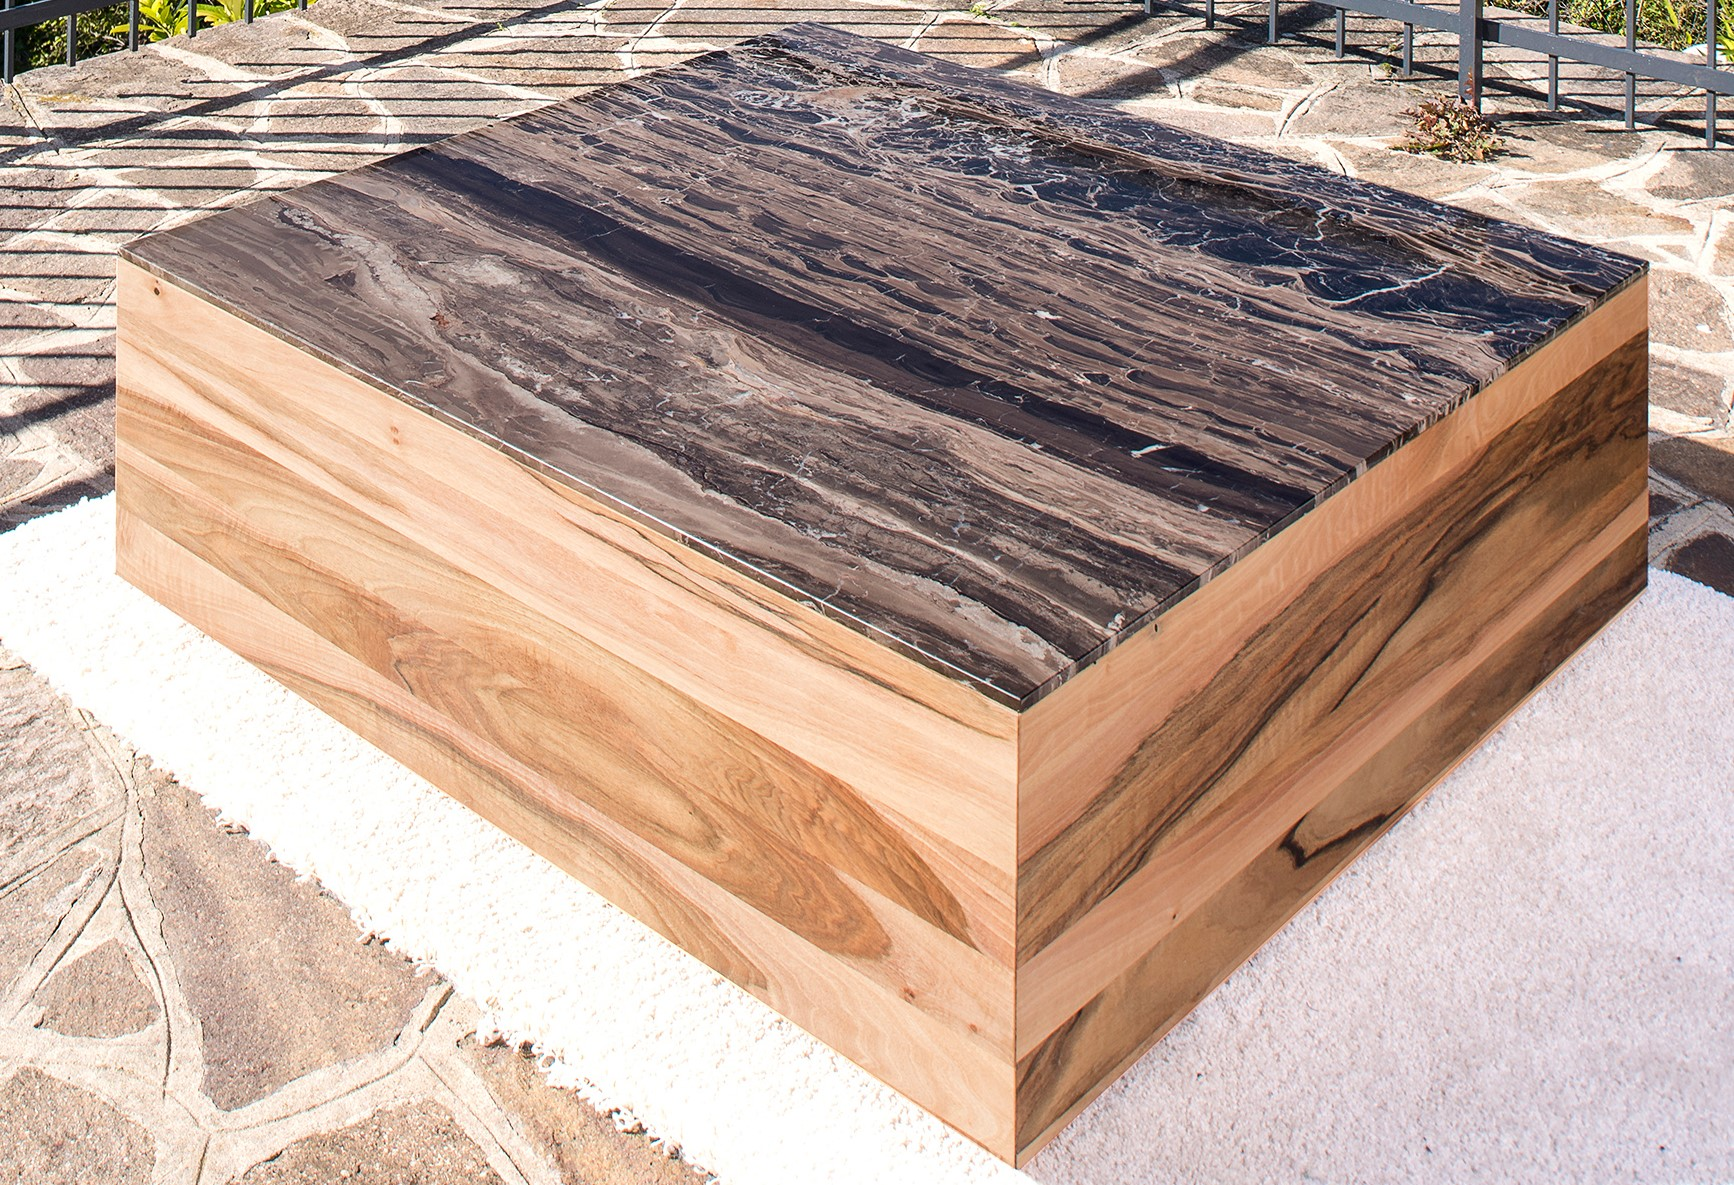 Garda coffee table with walnut wood and Frappucino natural stone top